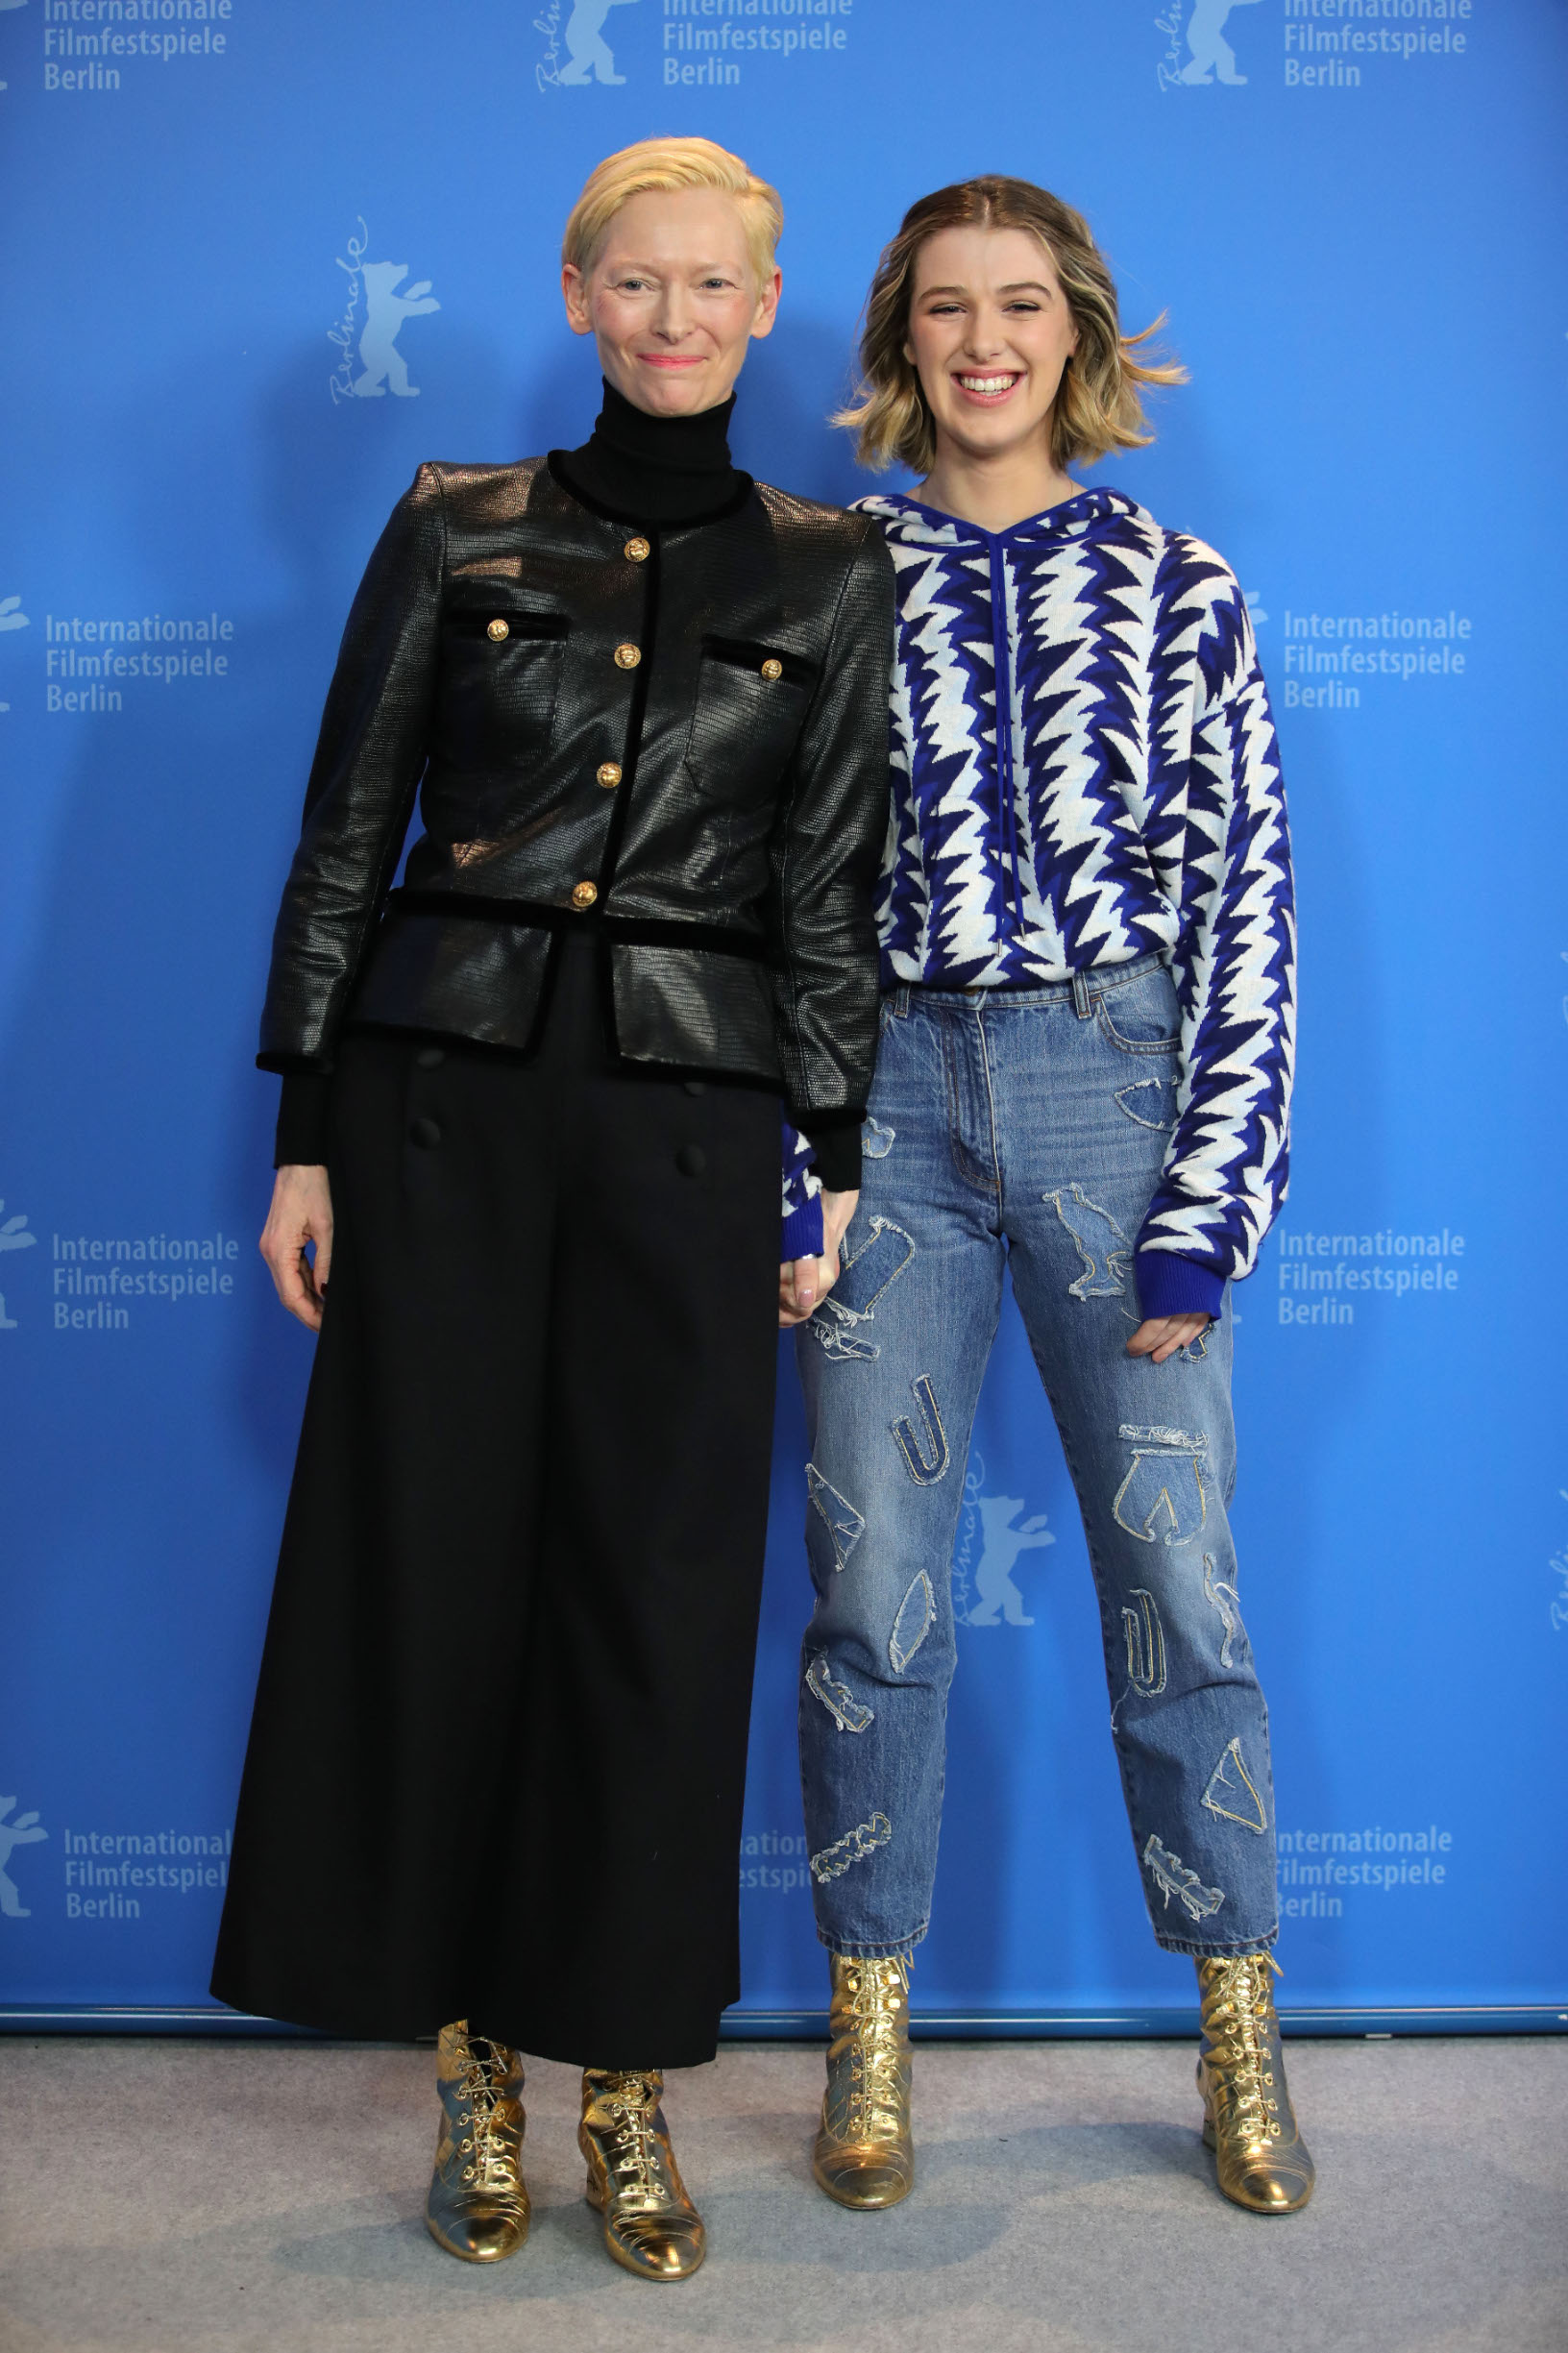 BERLIN, GERMANY - FEBRUARY 12: (l-R) Tilda Swinton and her daughter  Honor Swinton-Byrne pose at the